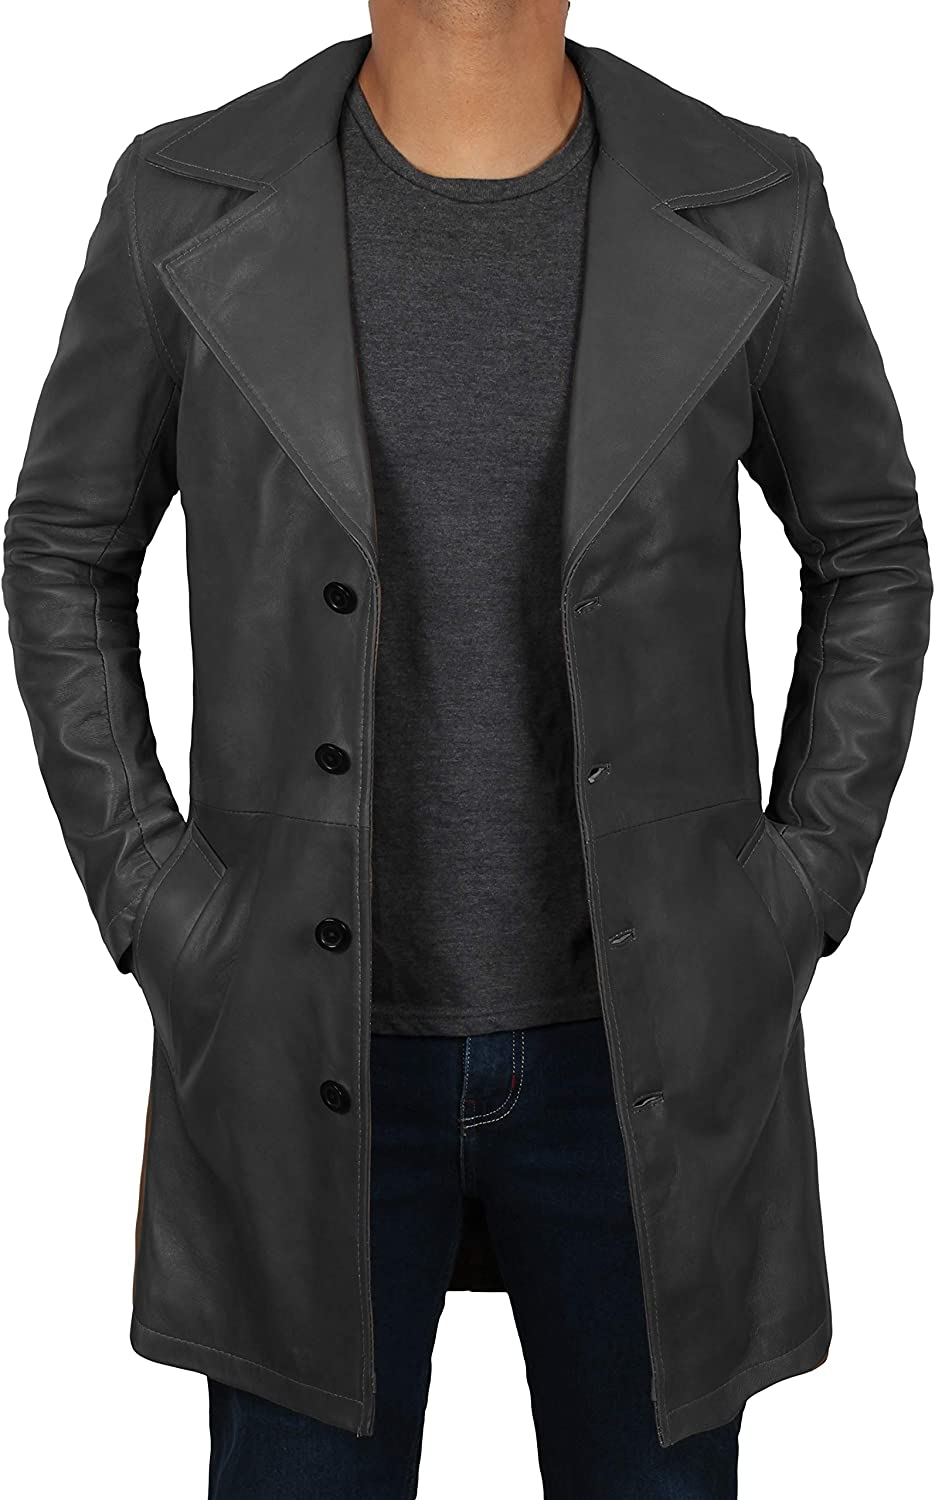 Leather Trench Coat Mens - 100% Real Leather Duster Overcoat Men Jacket